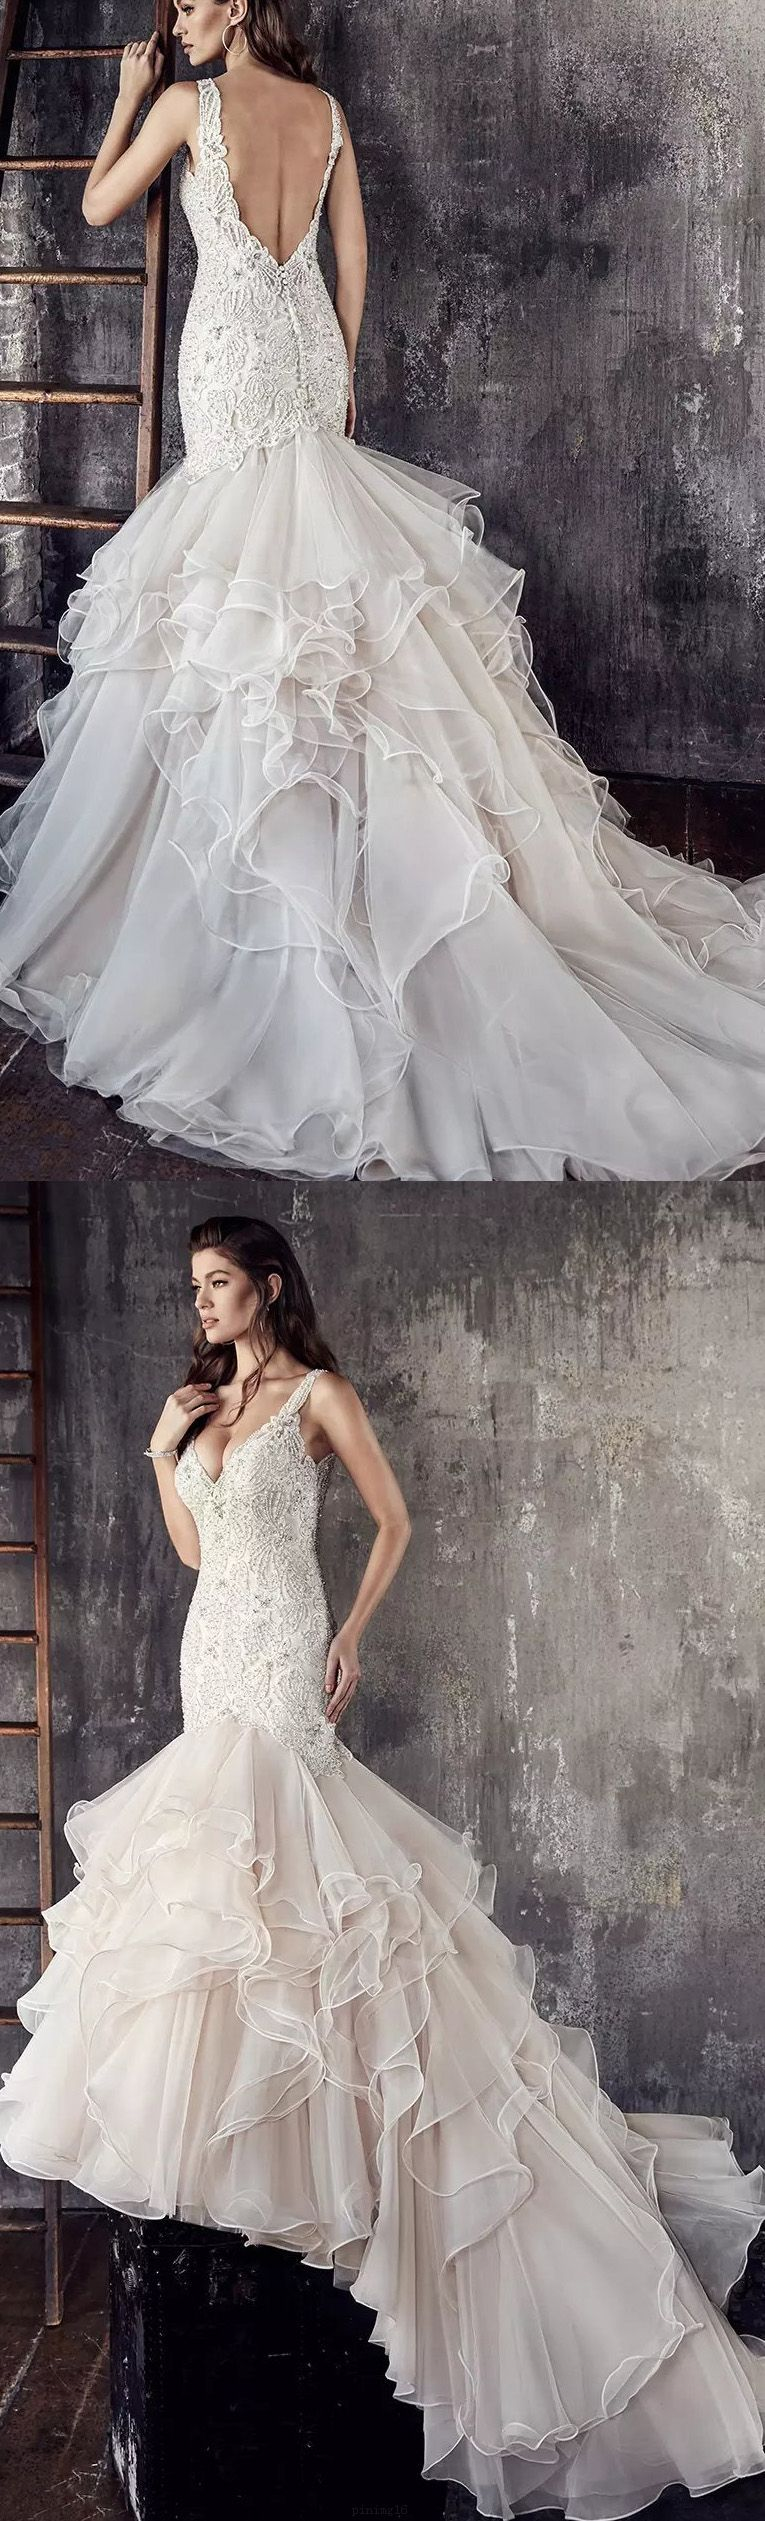 Custom made mermaidtrumpet wedding dresses long ivory dresses with